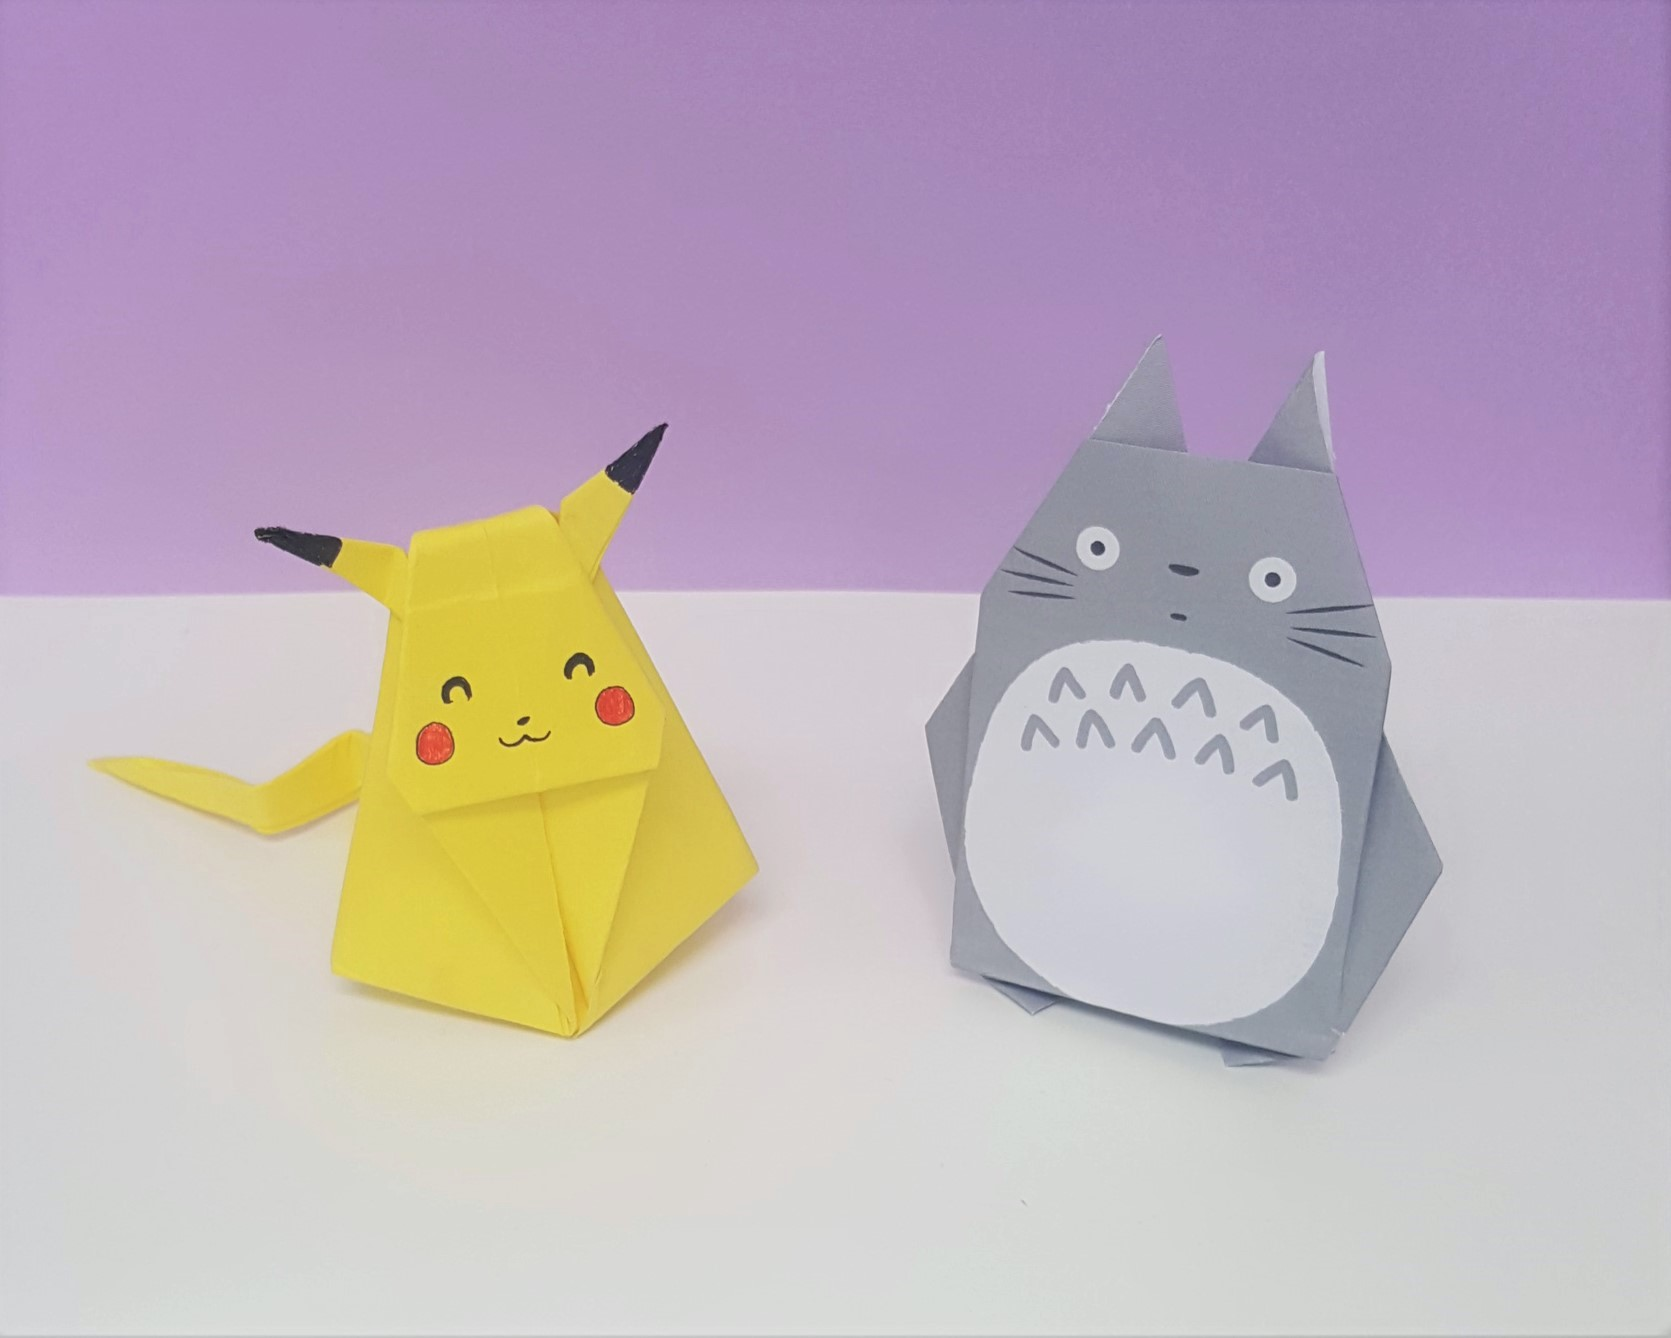 Kawaii Japanese Character Origami Designs You Need To Try ... - photo#21